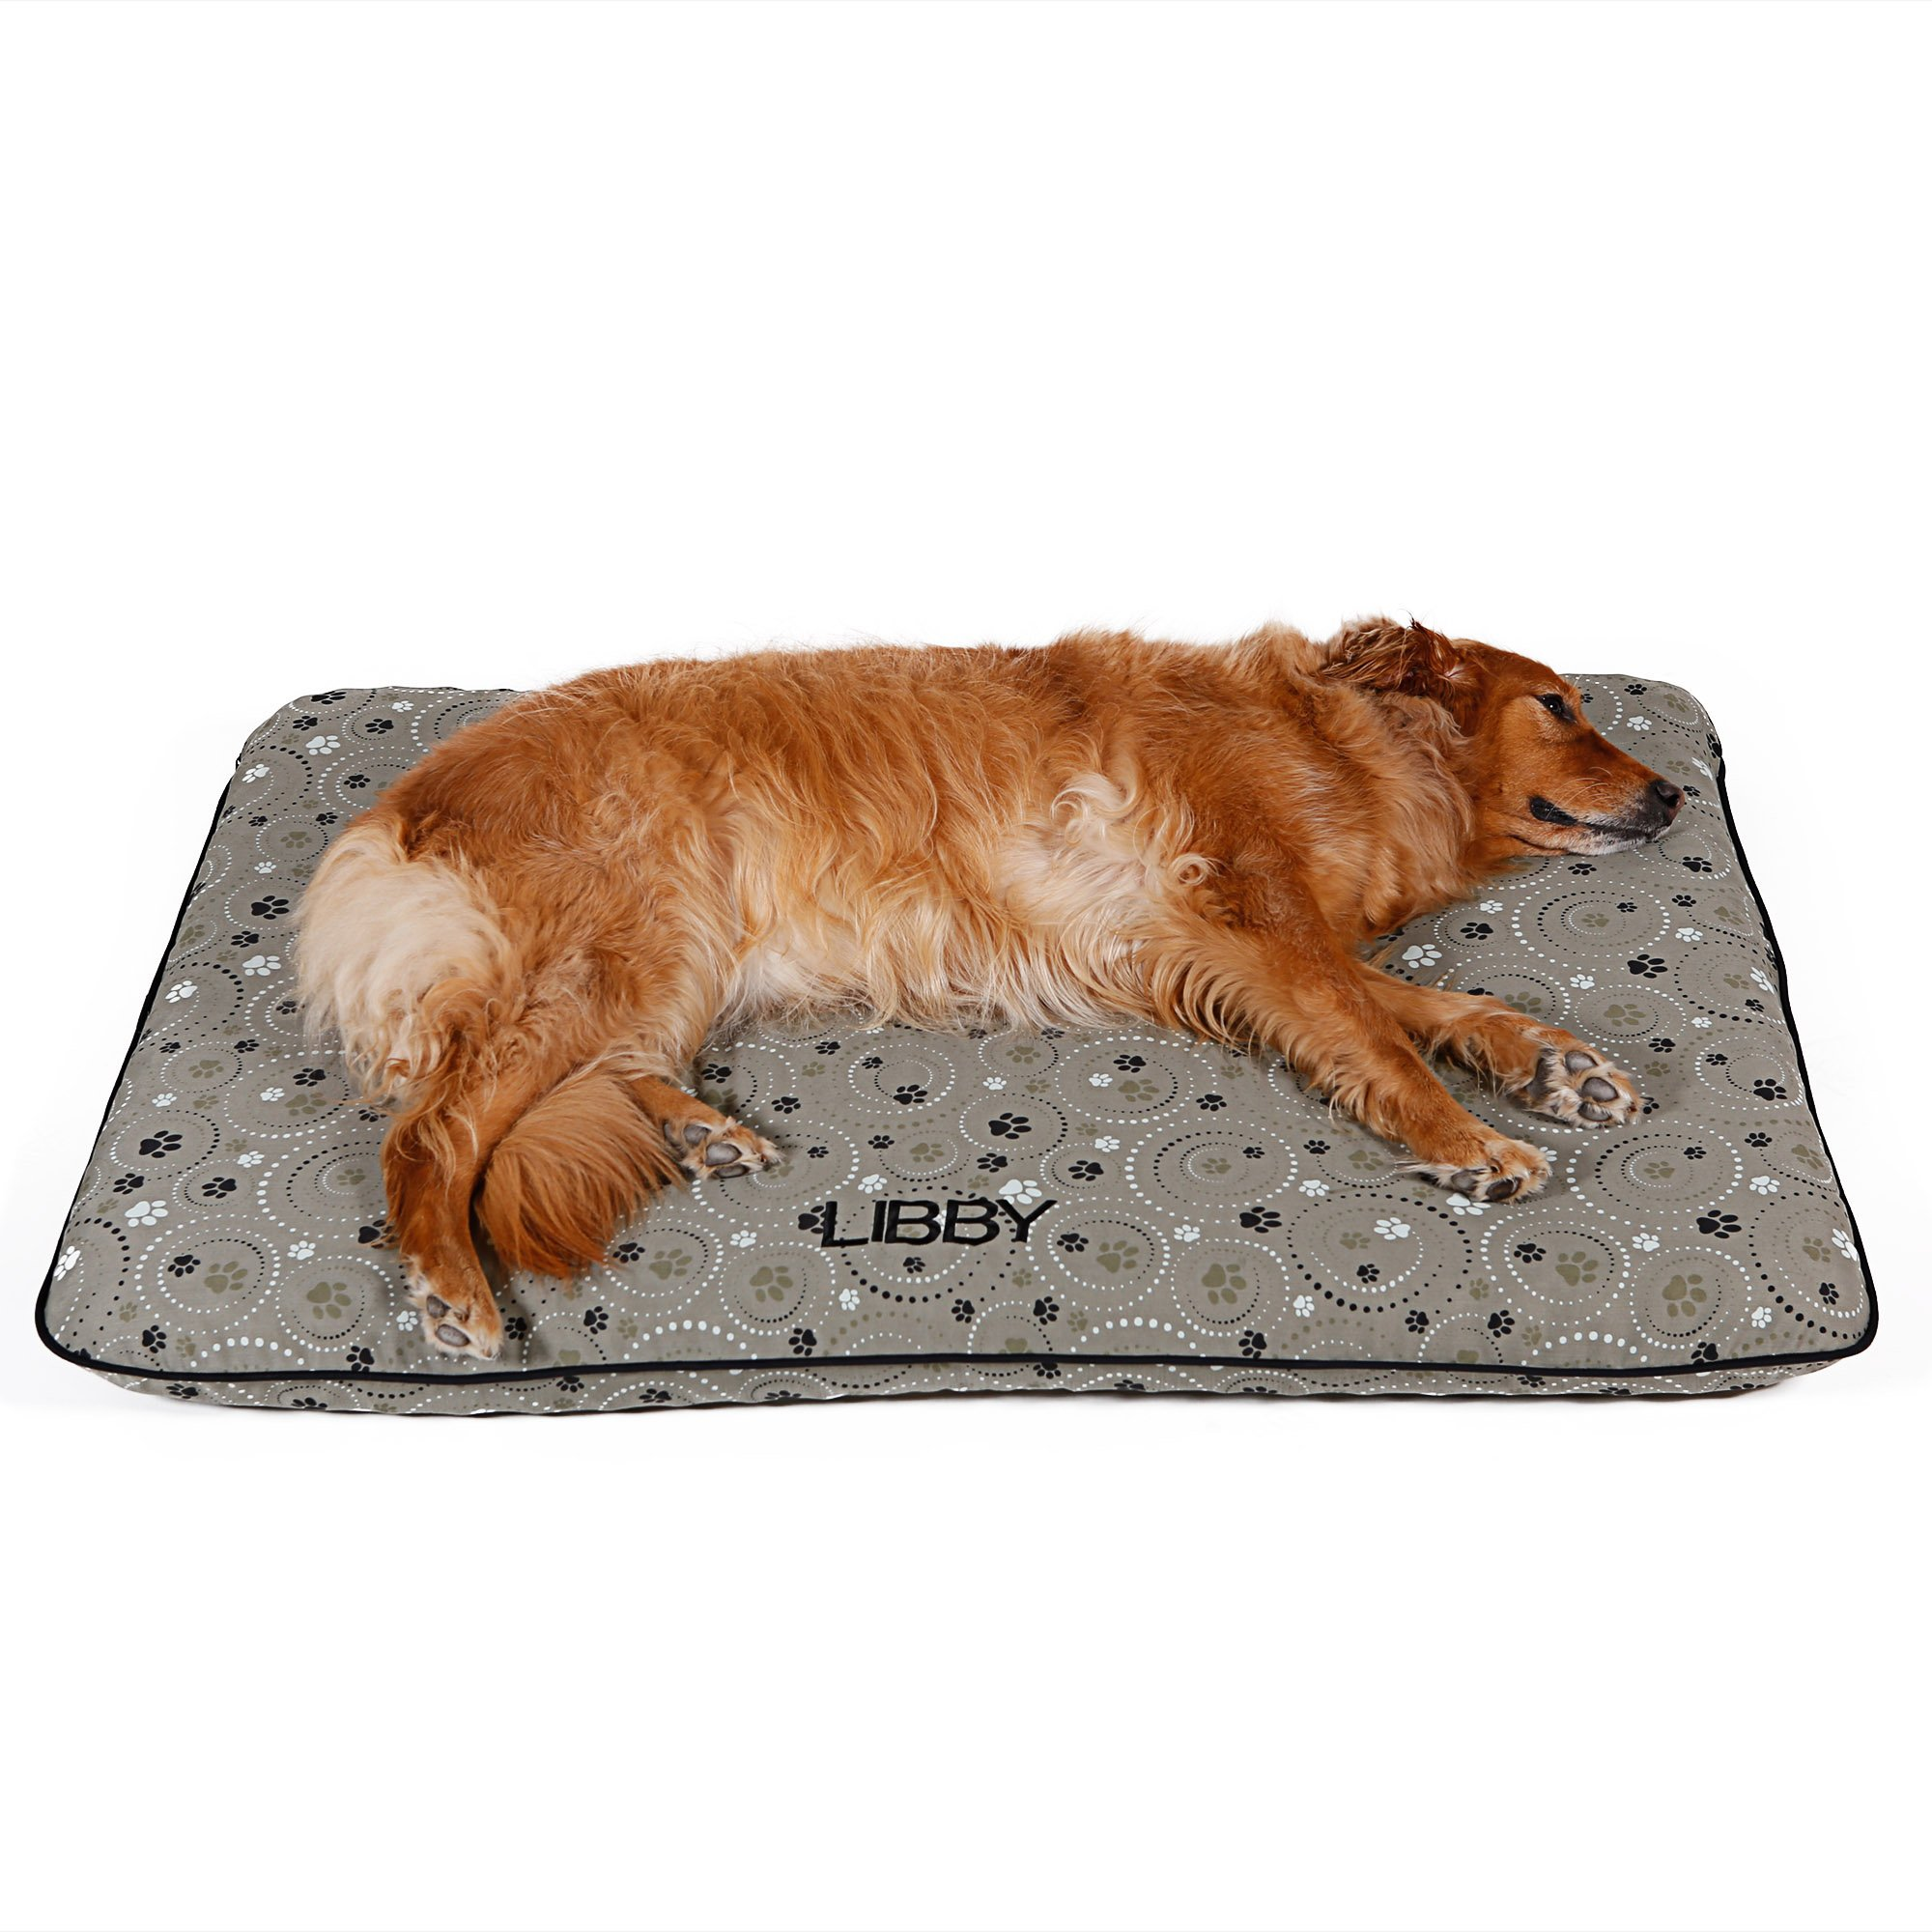 proof tips best cot comfortable xxl durable bed pvc most dog for fosters comfy toys chew kevlar dr ideas pet dogs beds cots tuff orvis indestructible large